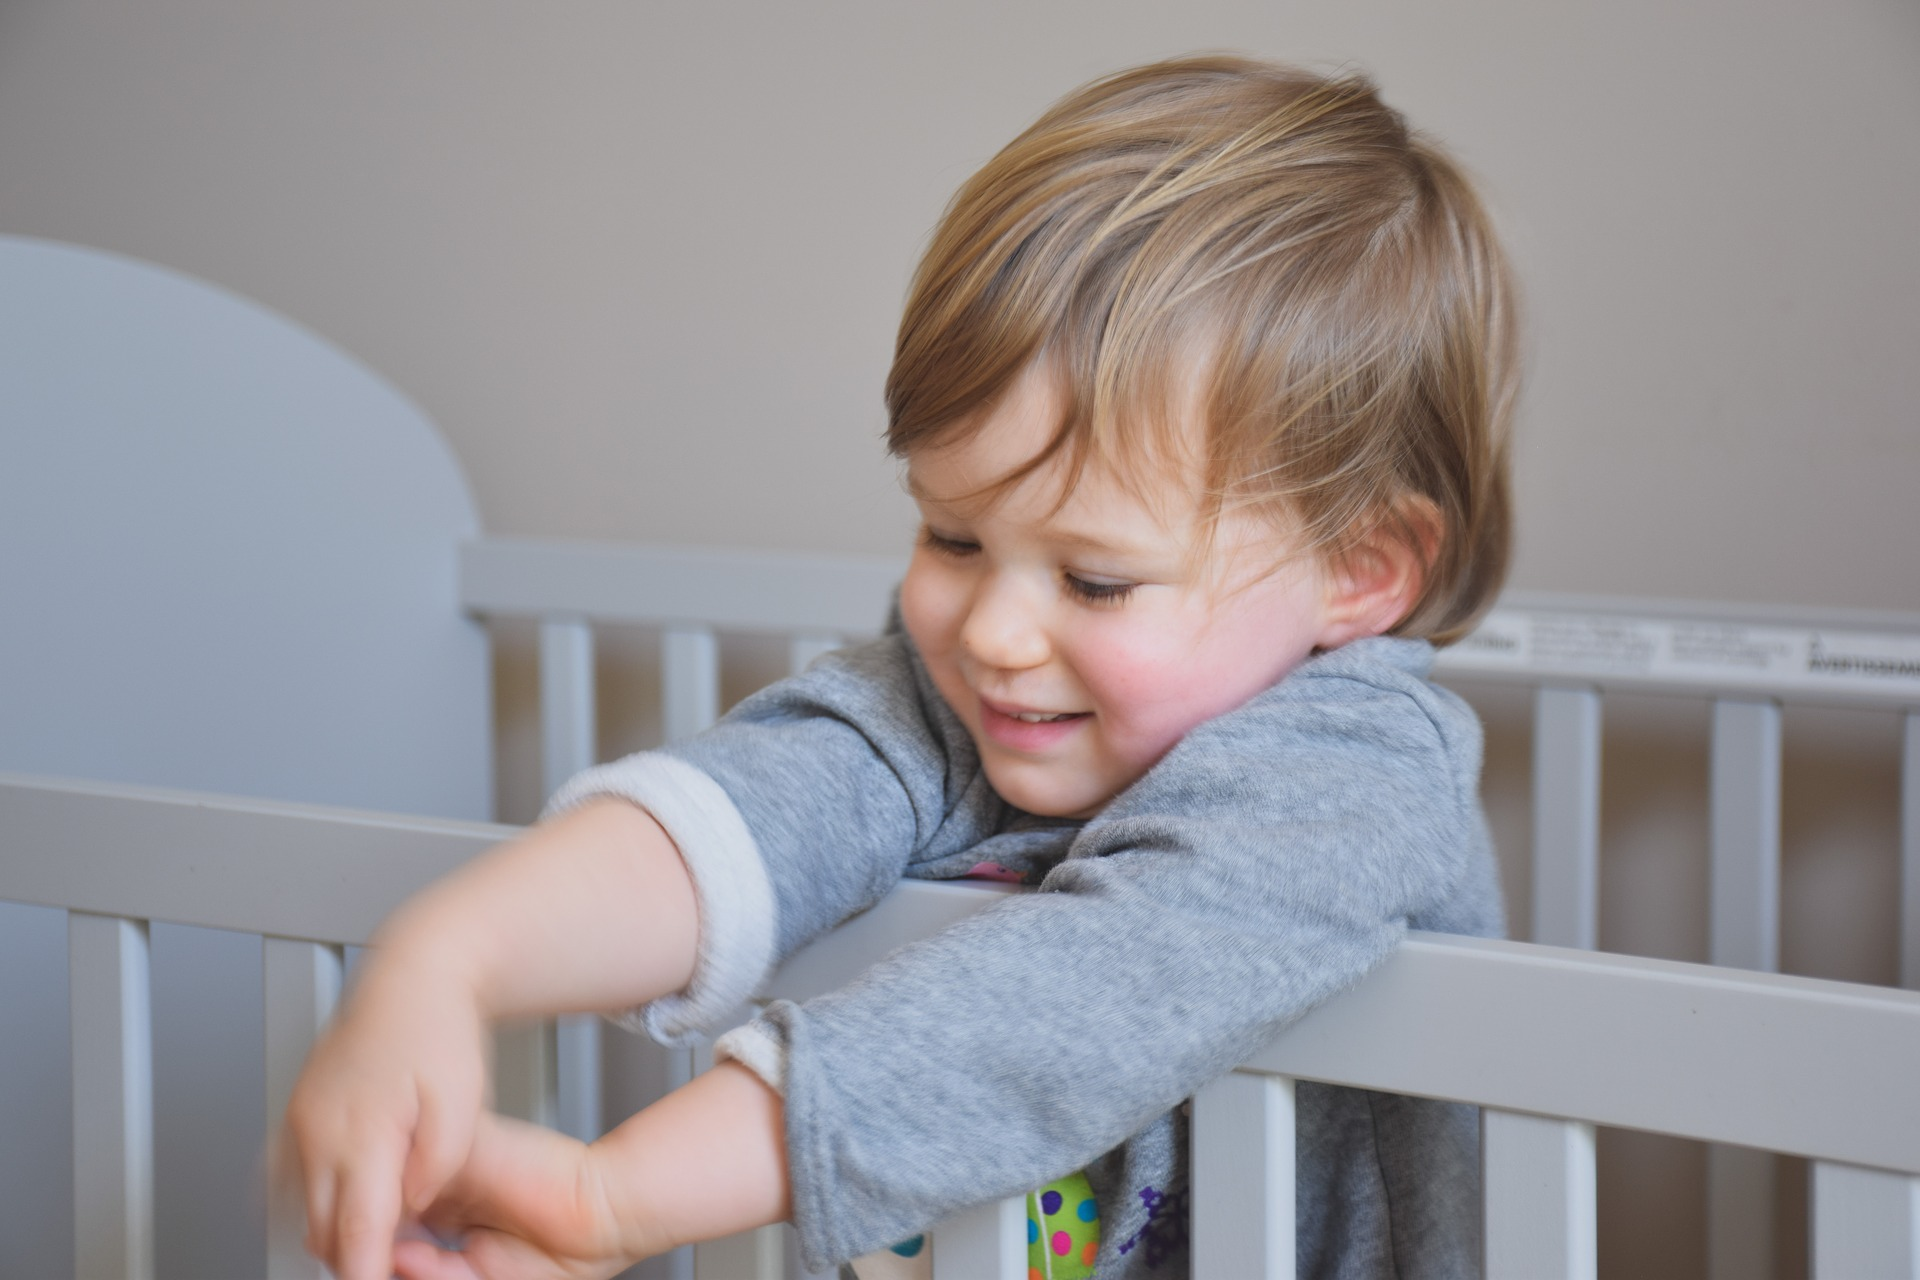 Every parent with a toddler wonders how to calm them down their over active toddler as bedtime looms. Here are 7 tips to help wind your toddler down!